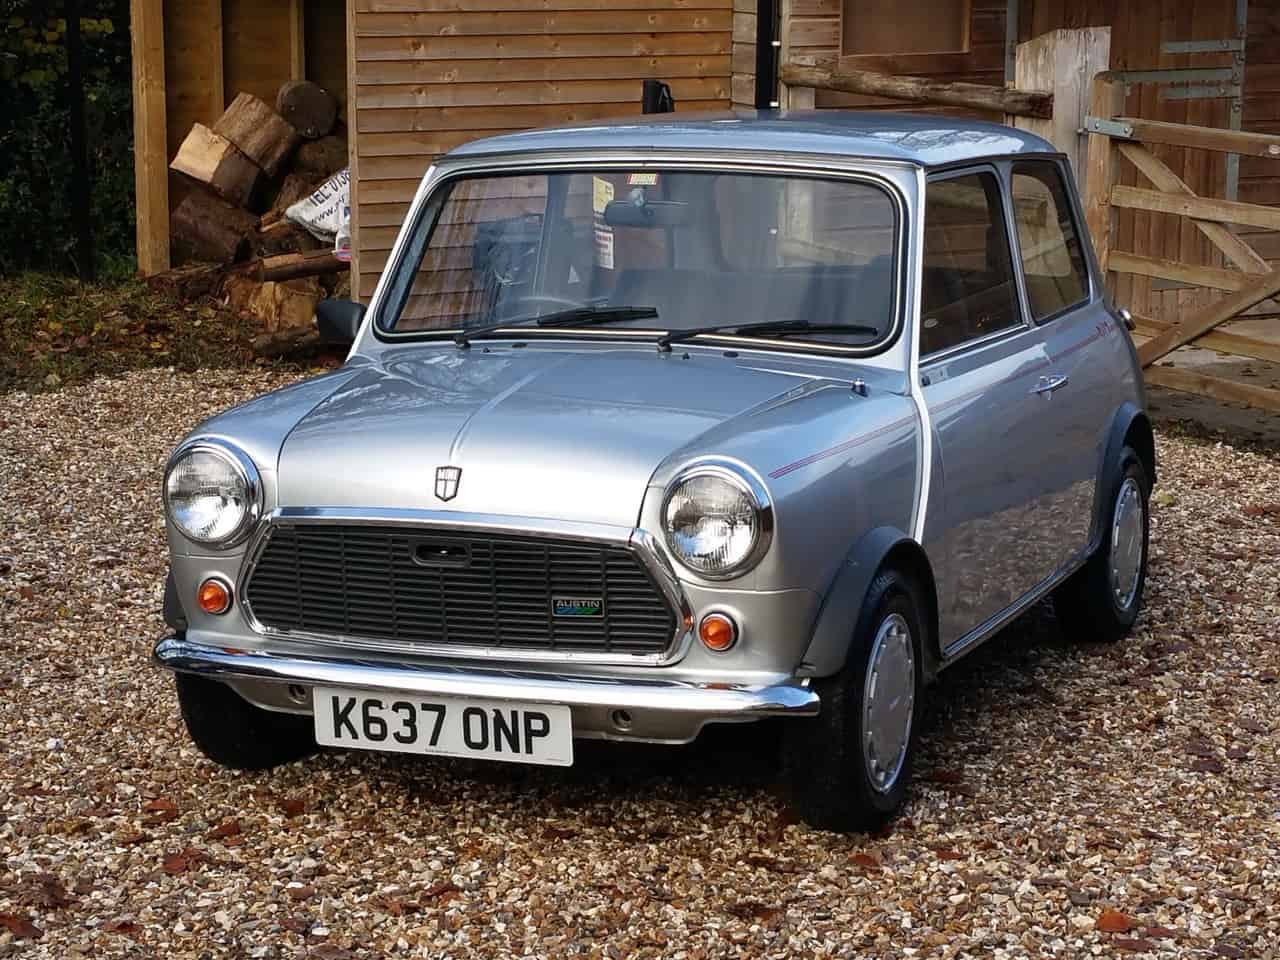 ** NOW SOLD ** Amazing 'Time Warp' Austin Mini Ritz On Just 3820 Miles In 35 Years!!